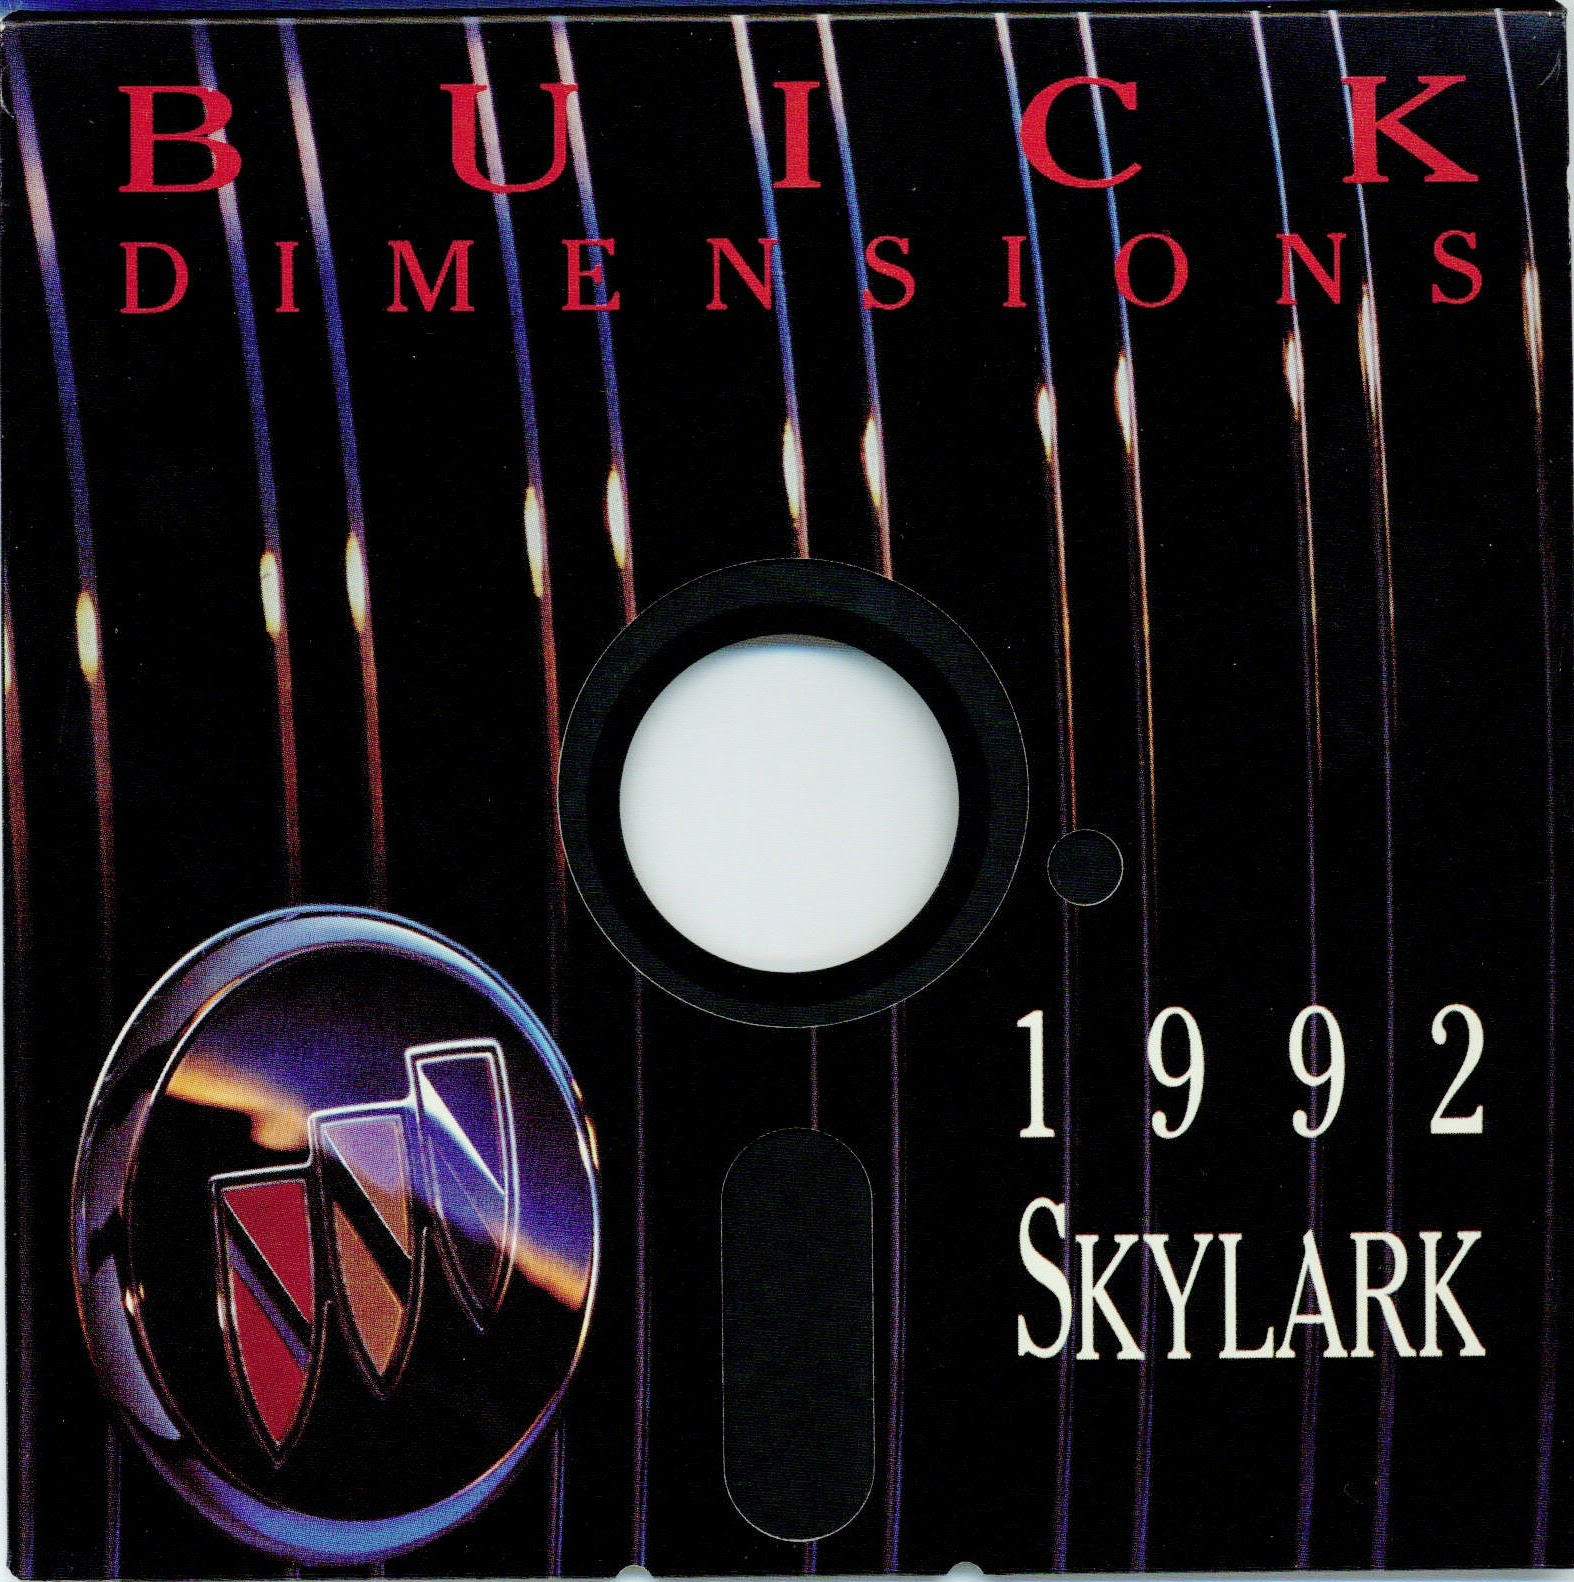 Nerdly Pleasures: Weird Software : The Buick Dimensions 1992